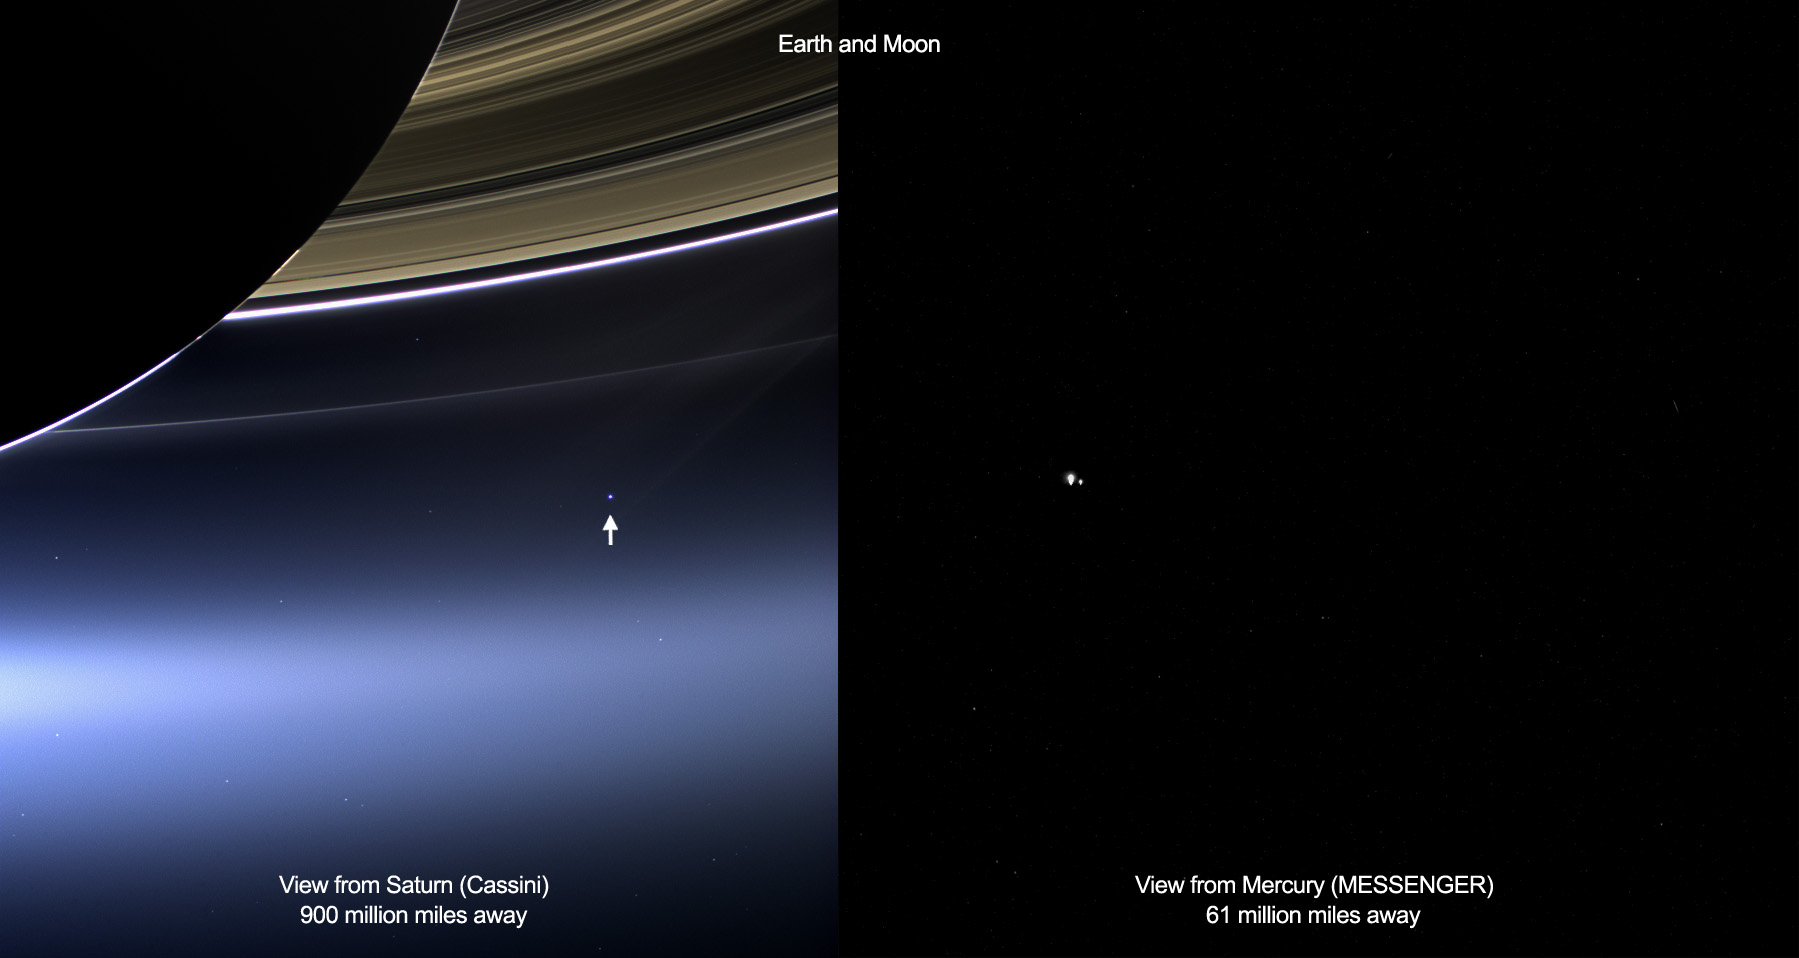 Earth and Moon: Views from Saturn & Mercury